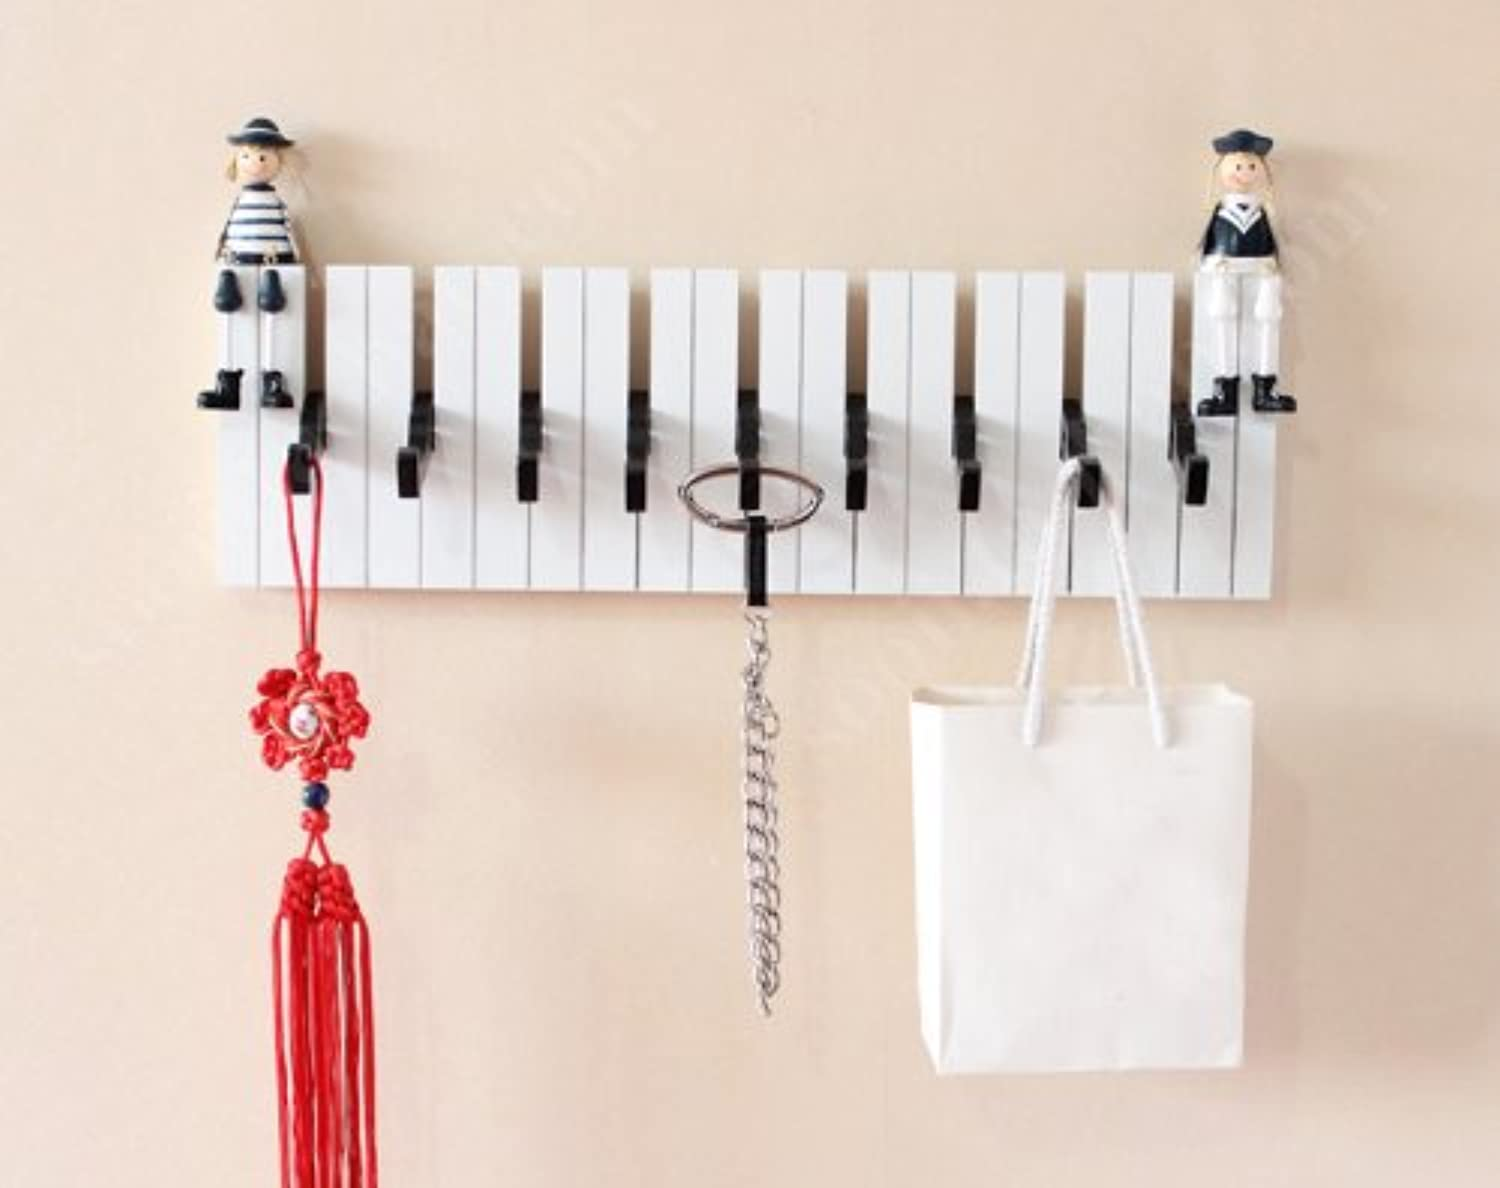 Piano Paint Hook -9 Hooks Wall Hangings Eureopean Style Wood Wall Shelf Creative Home Decorations (White)